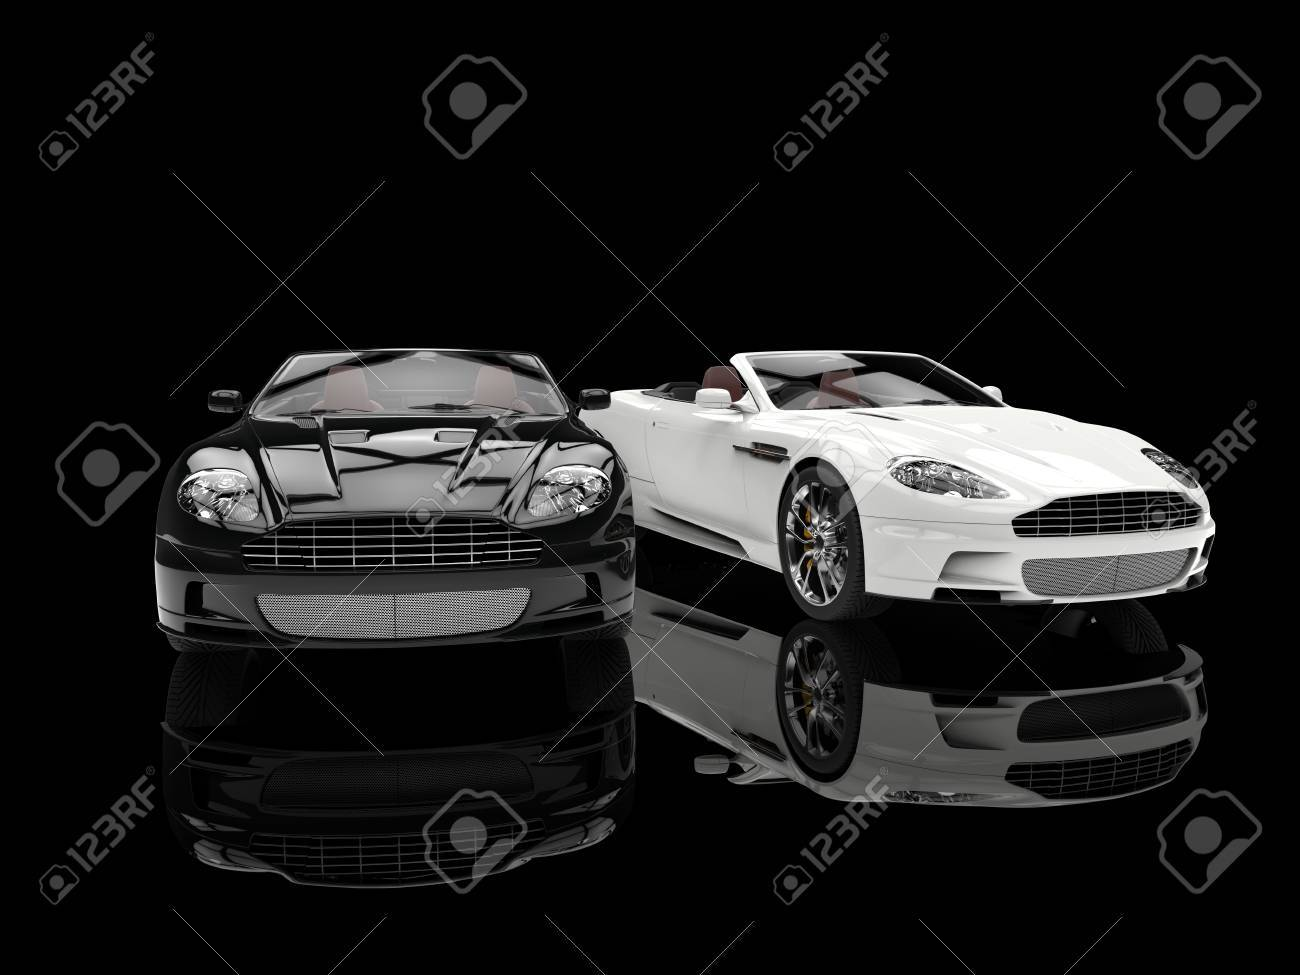 Black And White Luxury Sports Cars Reflection Stock Photo Picture And Royalty Free Image Image 54730417